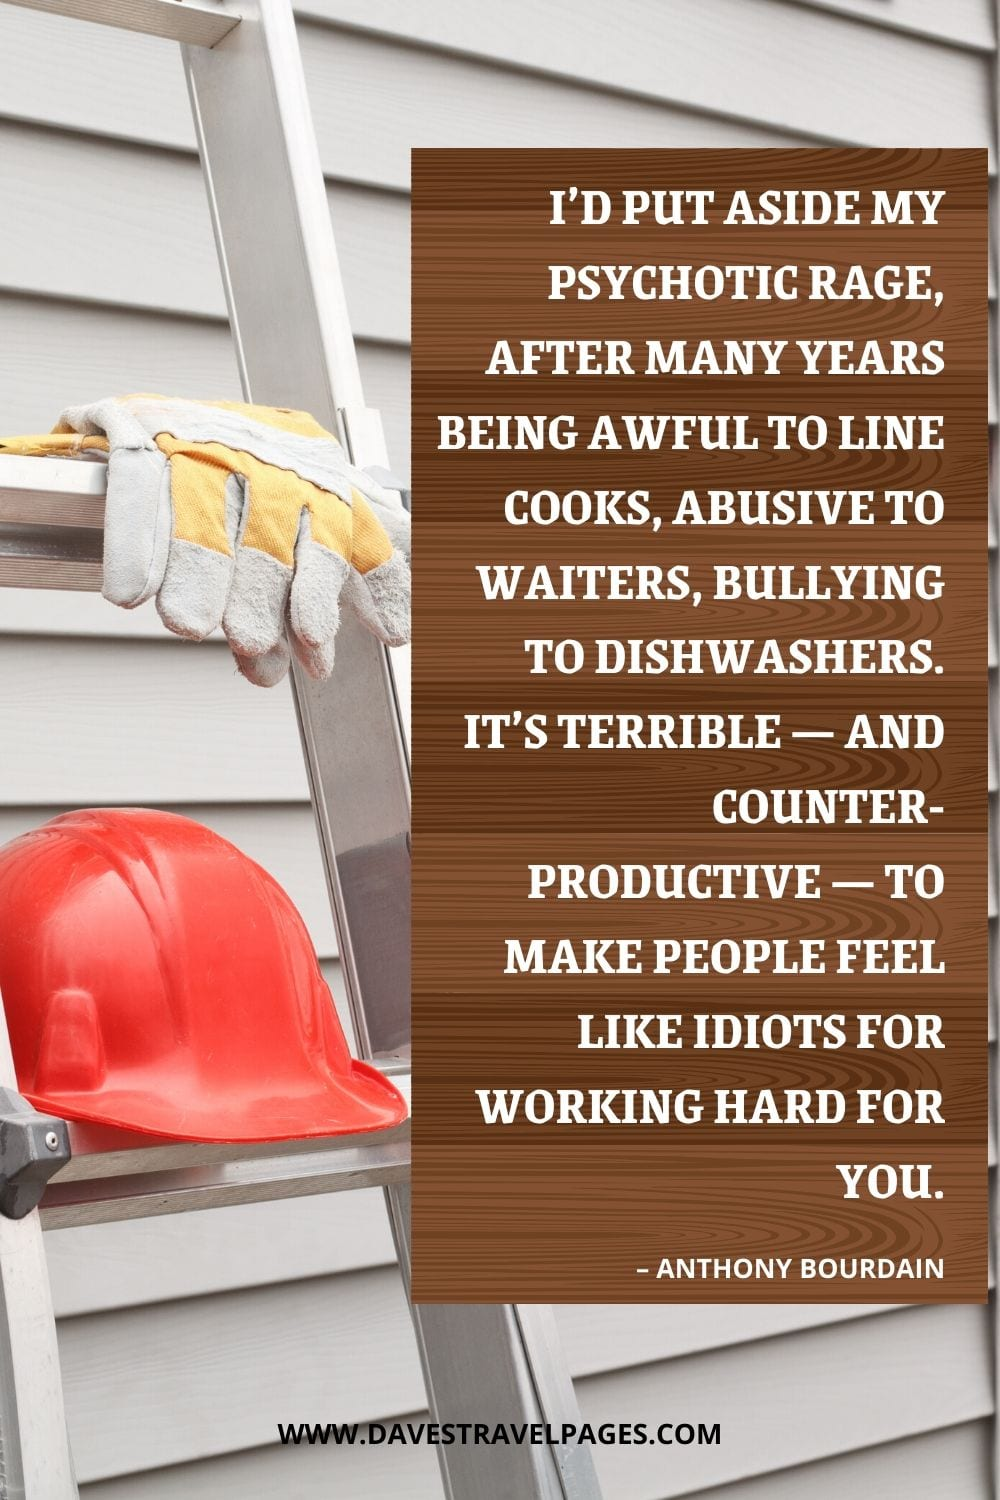 """""""I'd put aside my psychotic rage, after many years being awful to line cooks, abusive to waiters, bullying to dishwashers. It's terrible — and counter-productive — to make people feel like idiots for working hard for you."""" – Anthony Bourdain"""